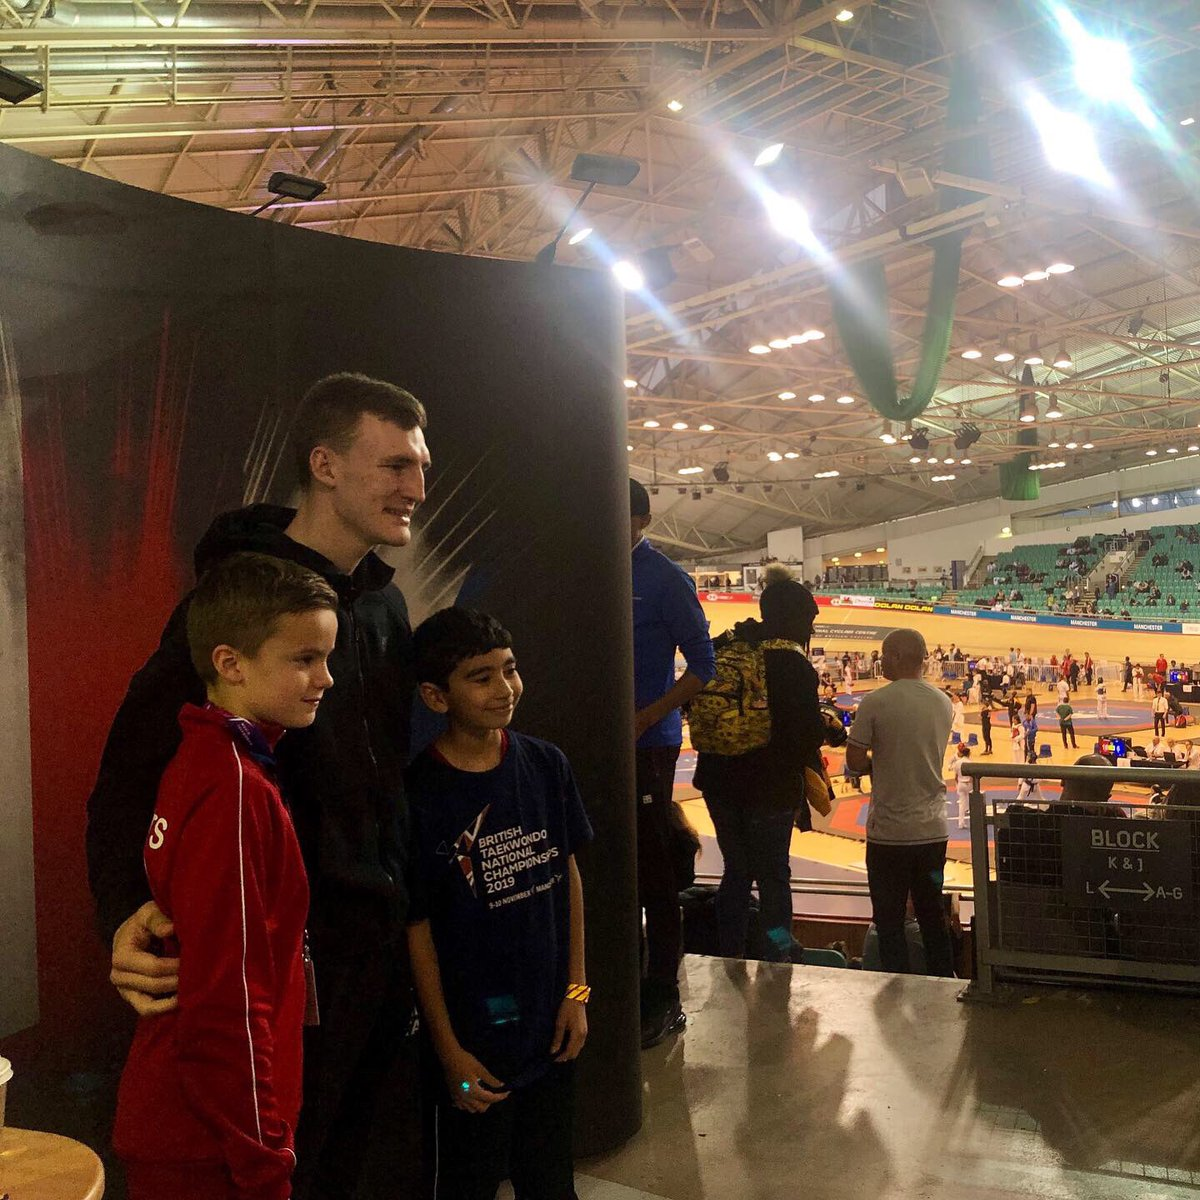 🥋| Huge thank you to all of the @gbtaekwondo athletes that came down to the Kyorugi National Championships for some meet and greets today 🇬🇧 #TaekwondoNationals2019